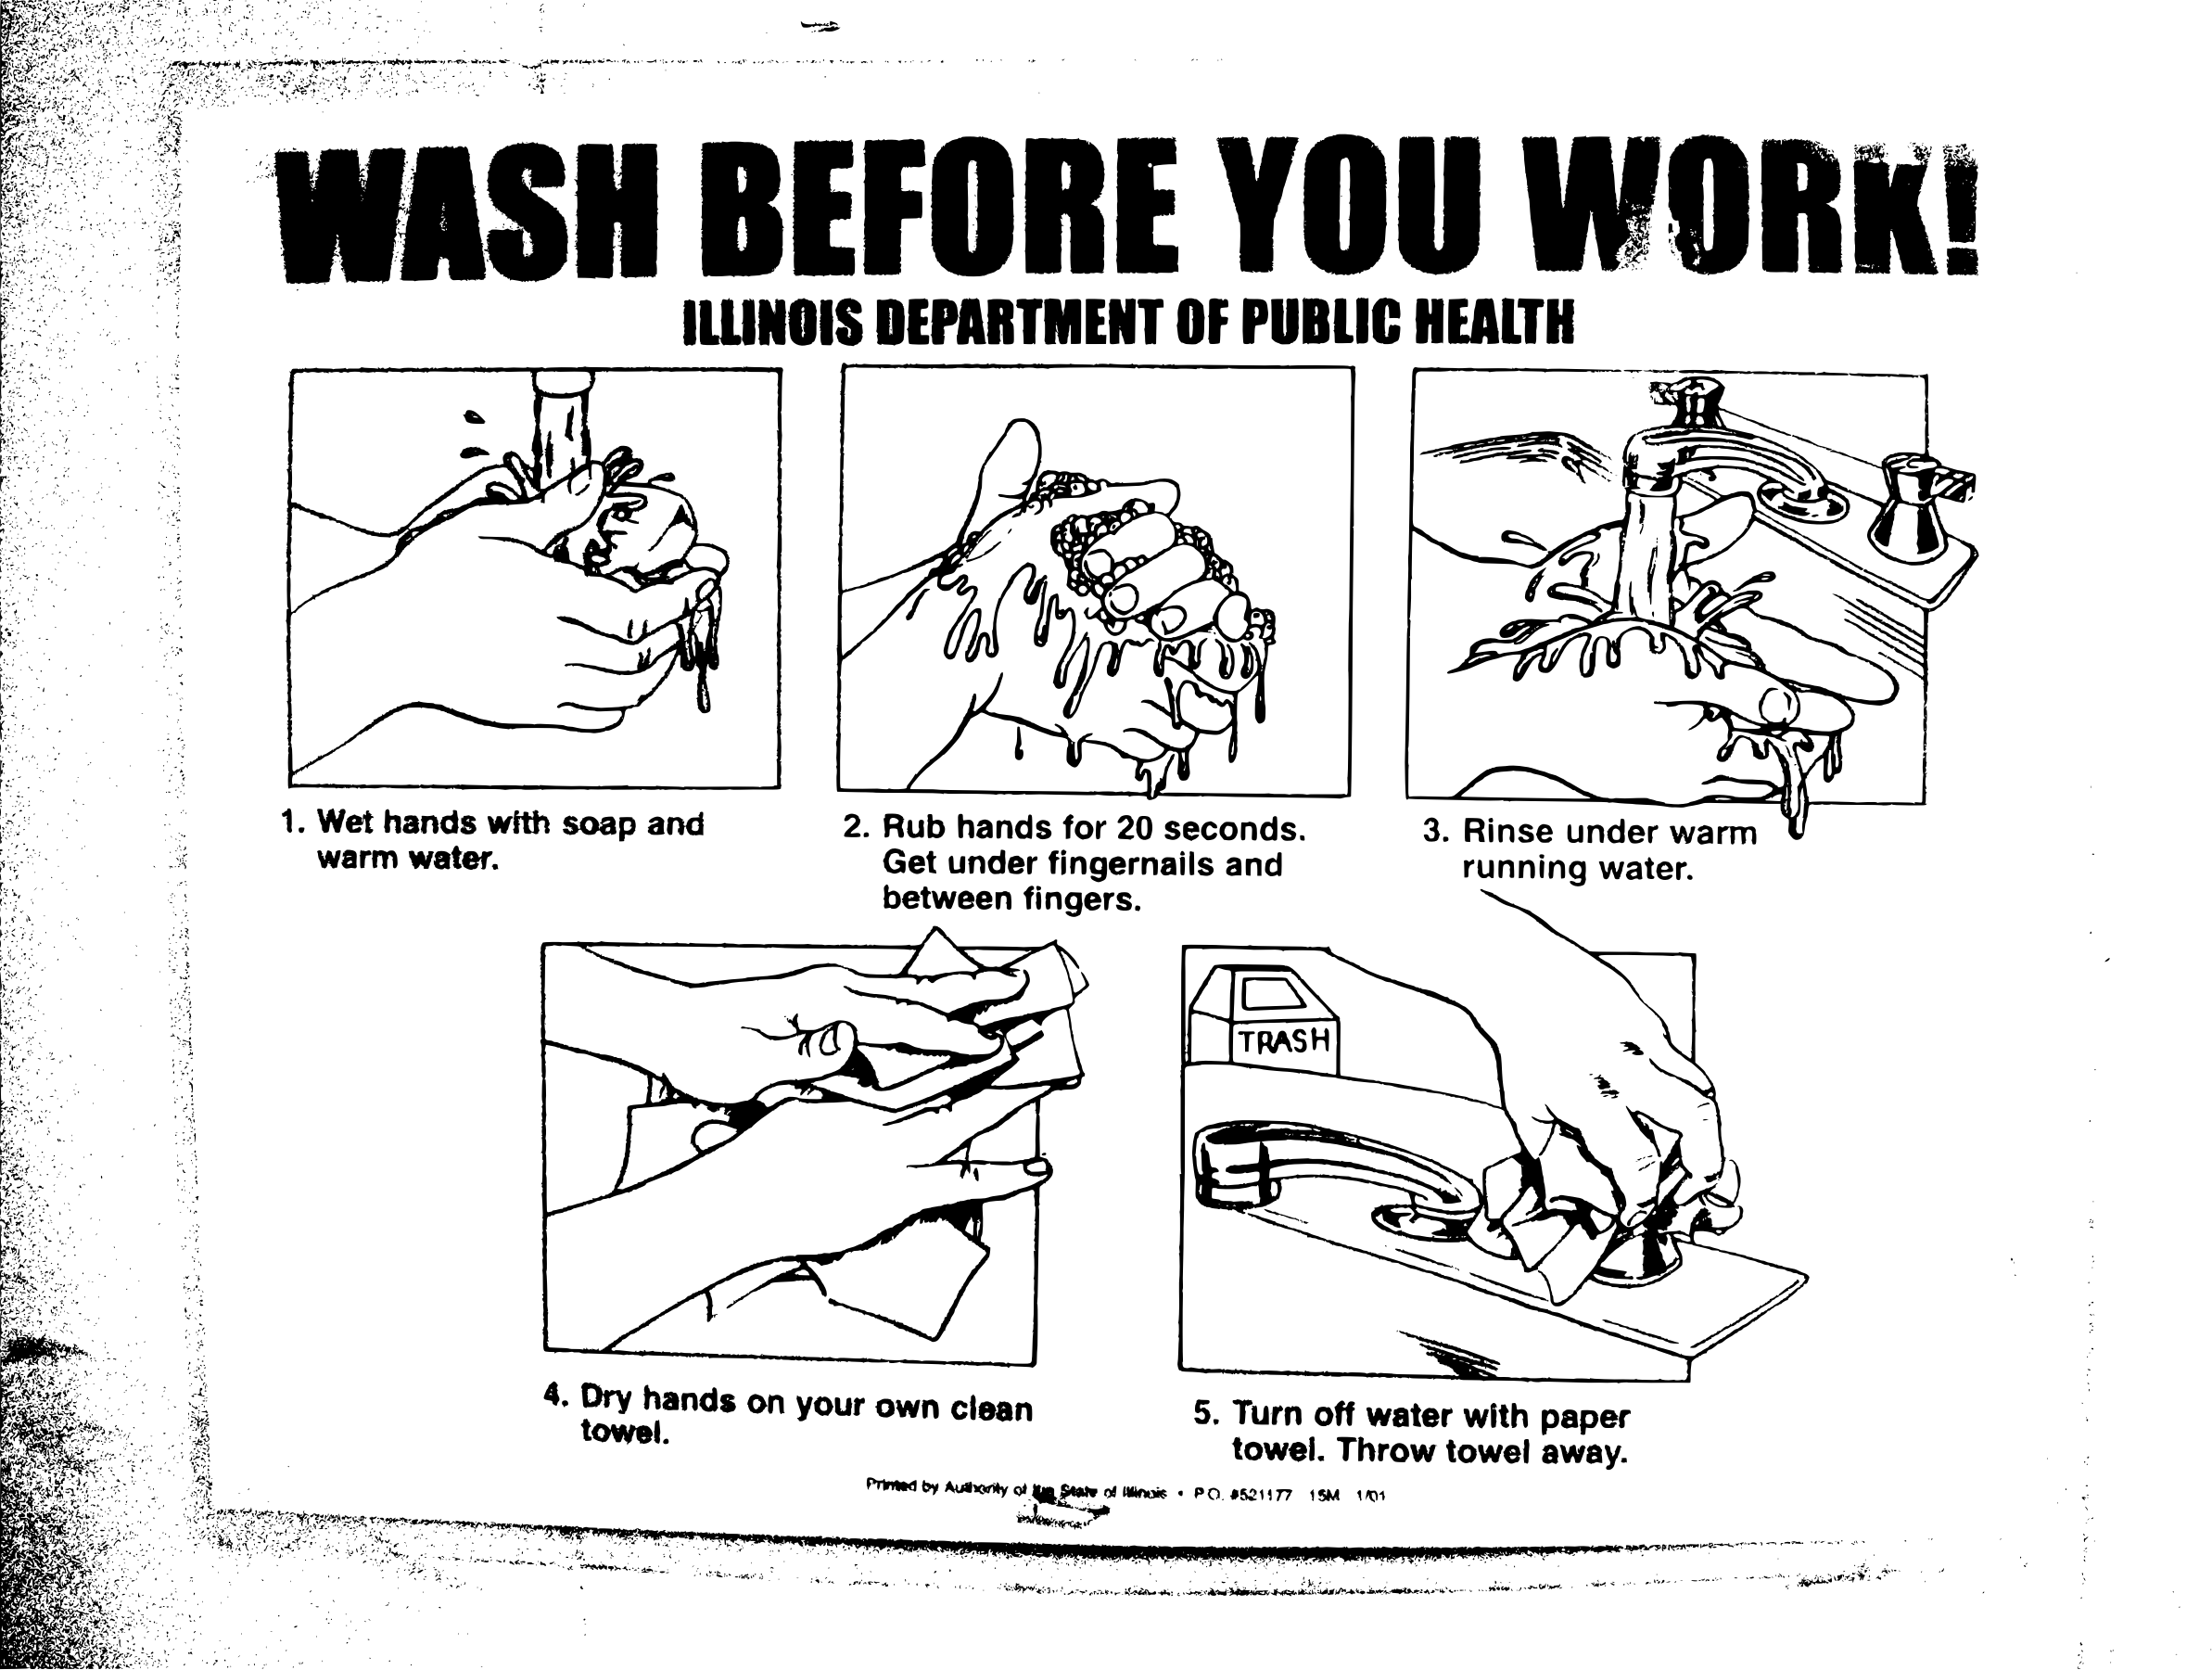 Cleaning Clipart Washing Hand Cleaning Washing Hand